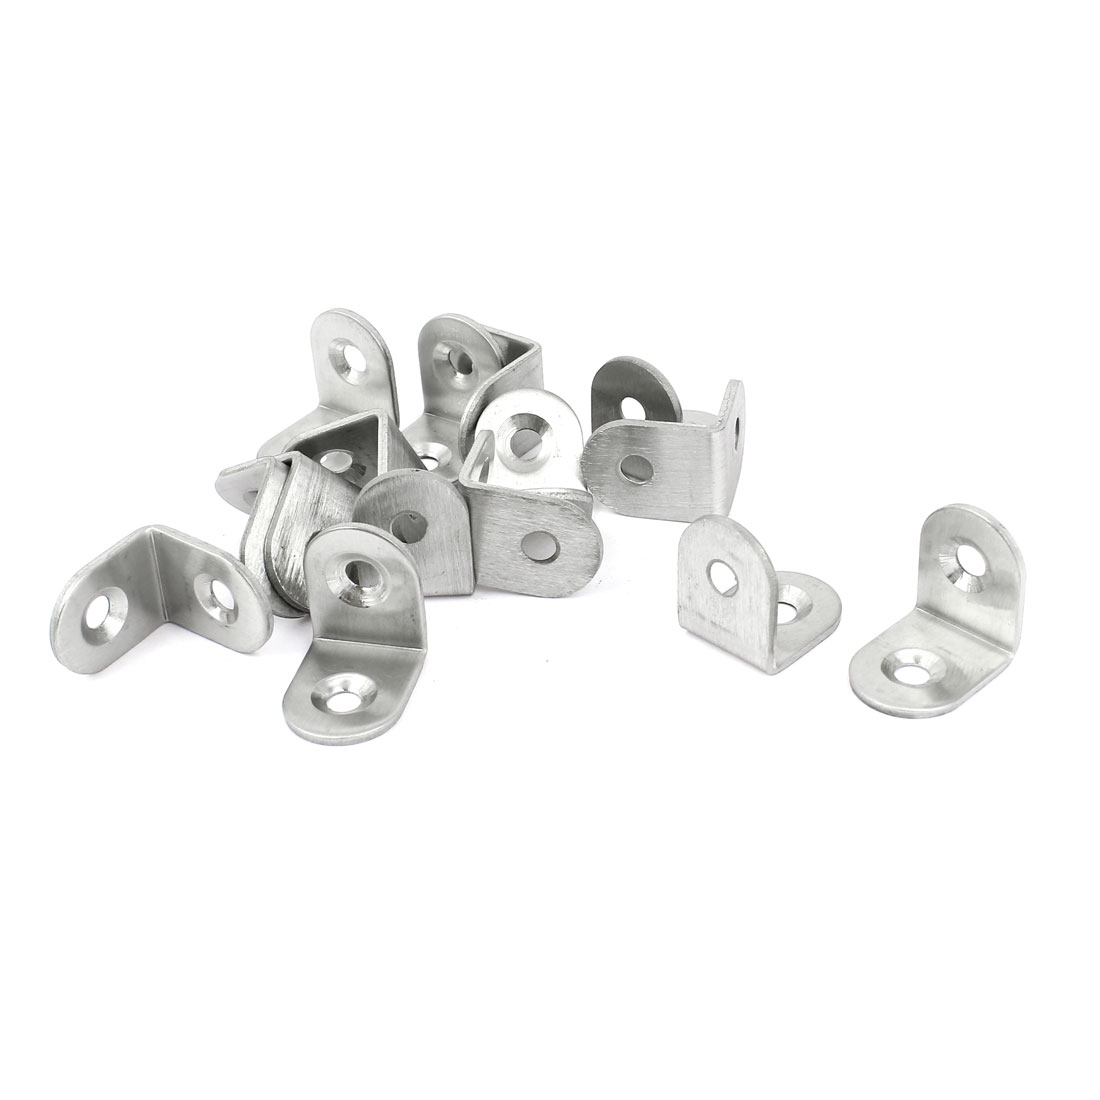 Compare Prices on Brackets Shelves- Online Shopping/Buy Low Price ...